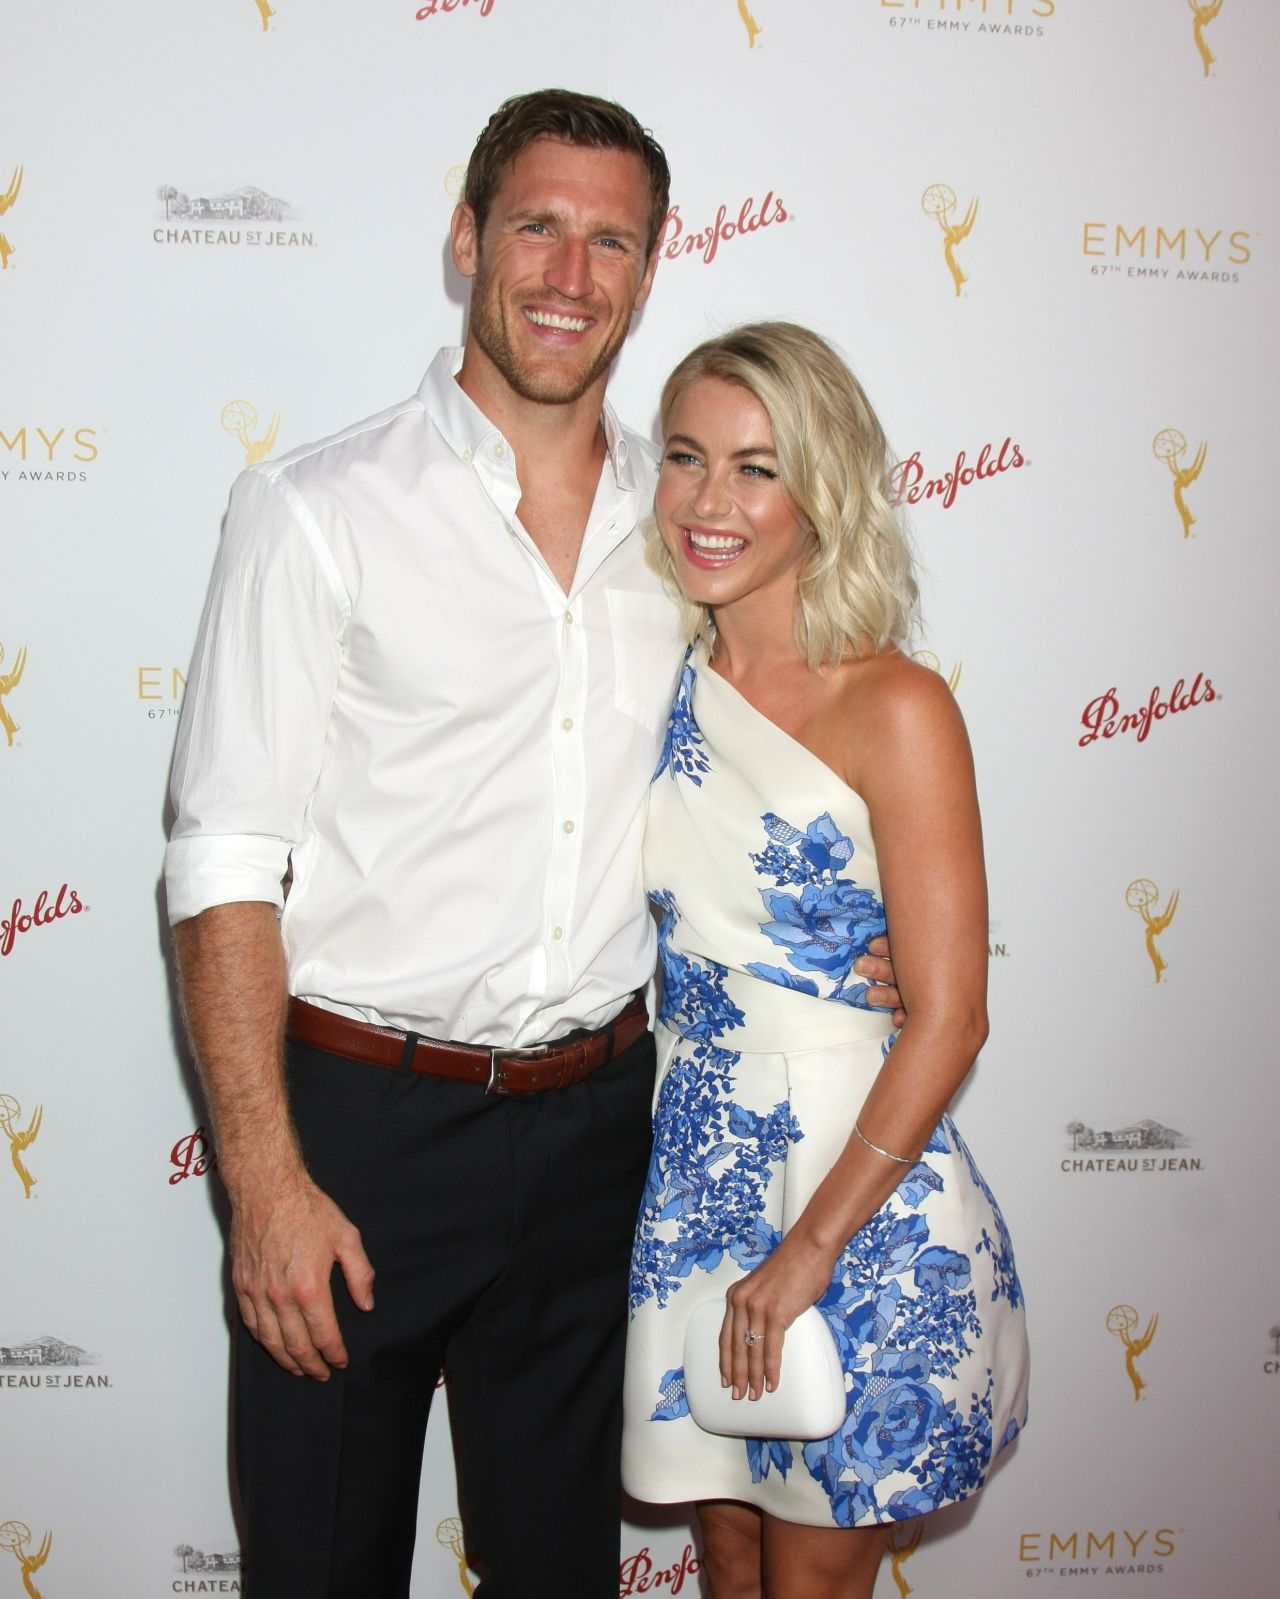 Julianne Hough made her first red carpet appearance with her fiance, Brooks Laich